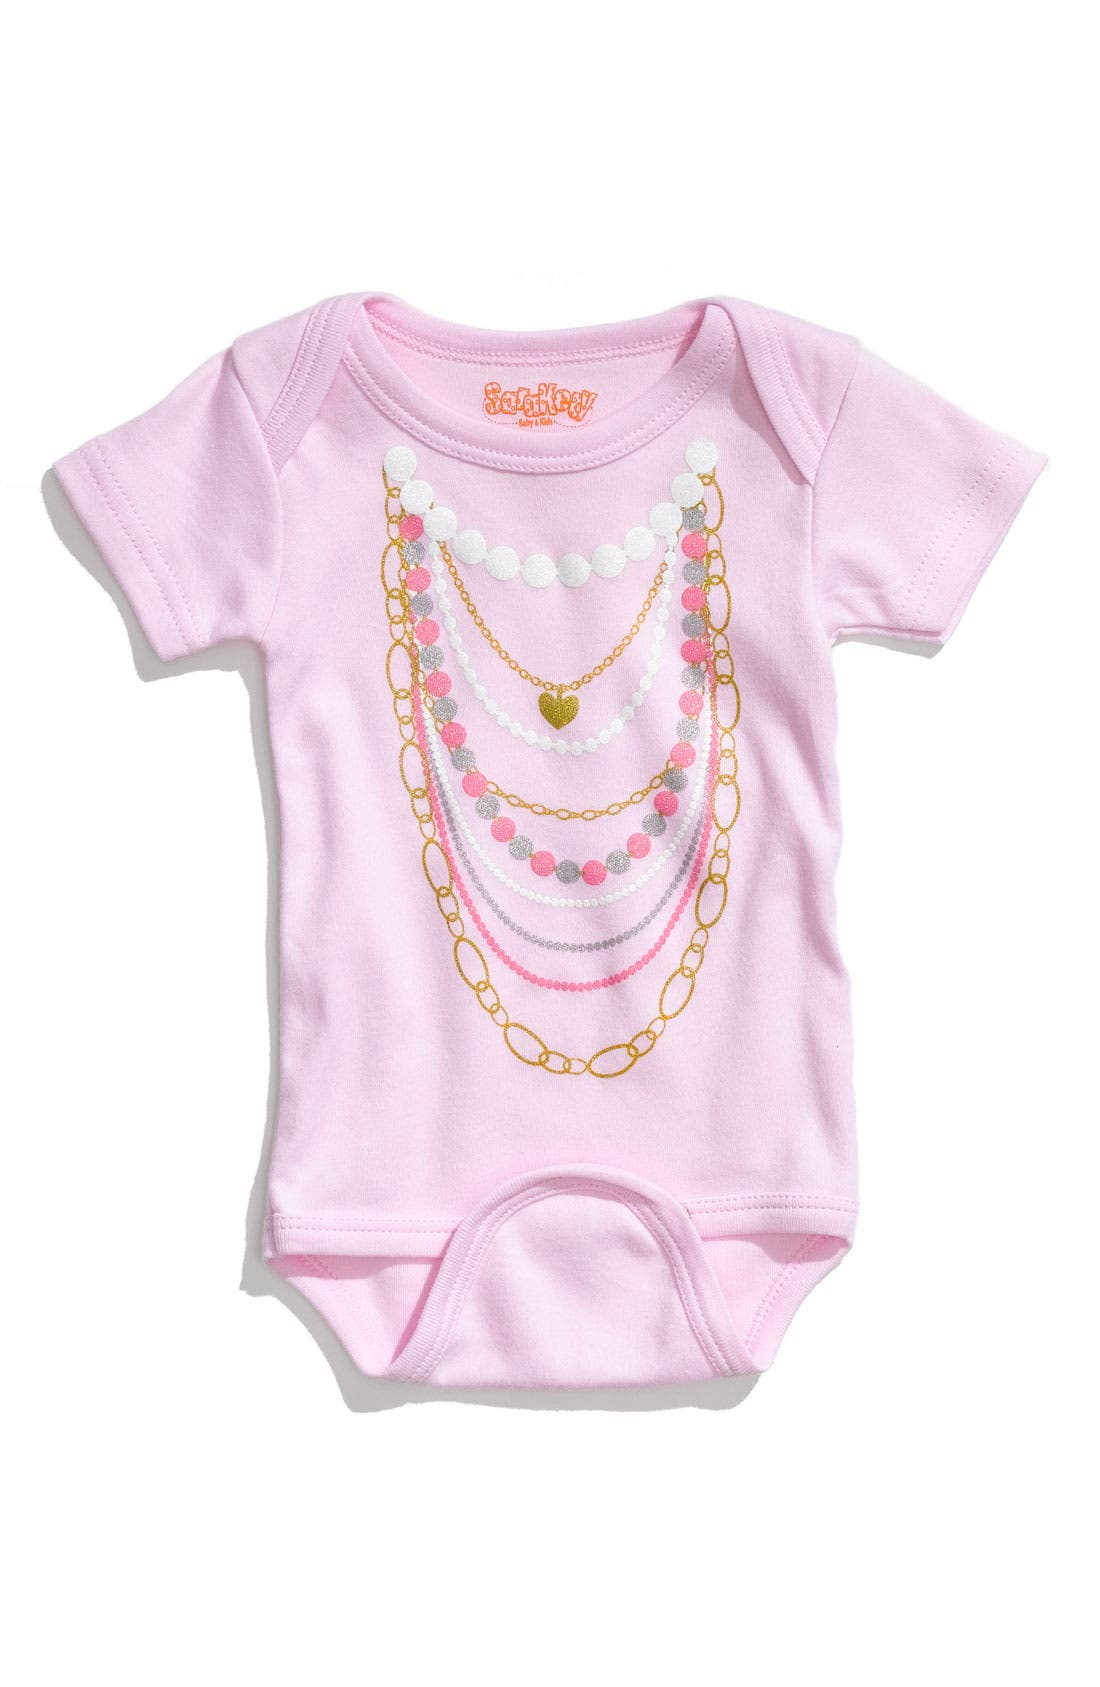 Alternate Image 1 Selected - Sara Kety Baby & Kids 'Necklaces' Bodysuit (Infant)